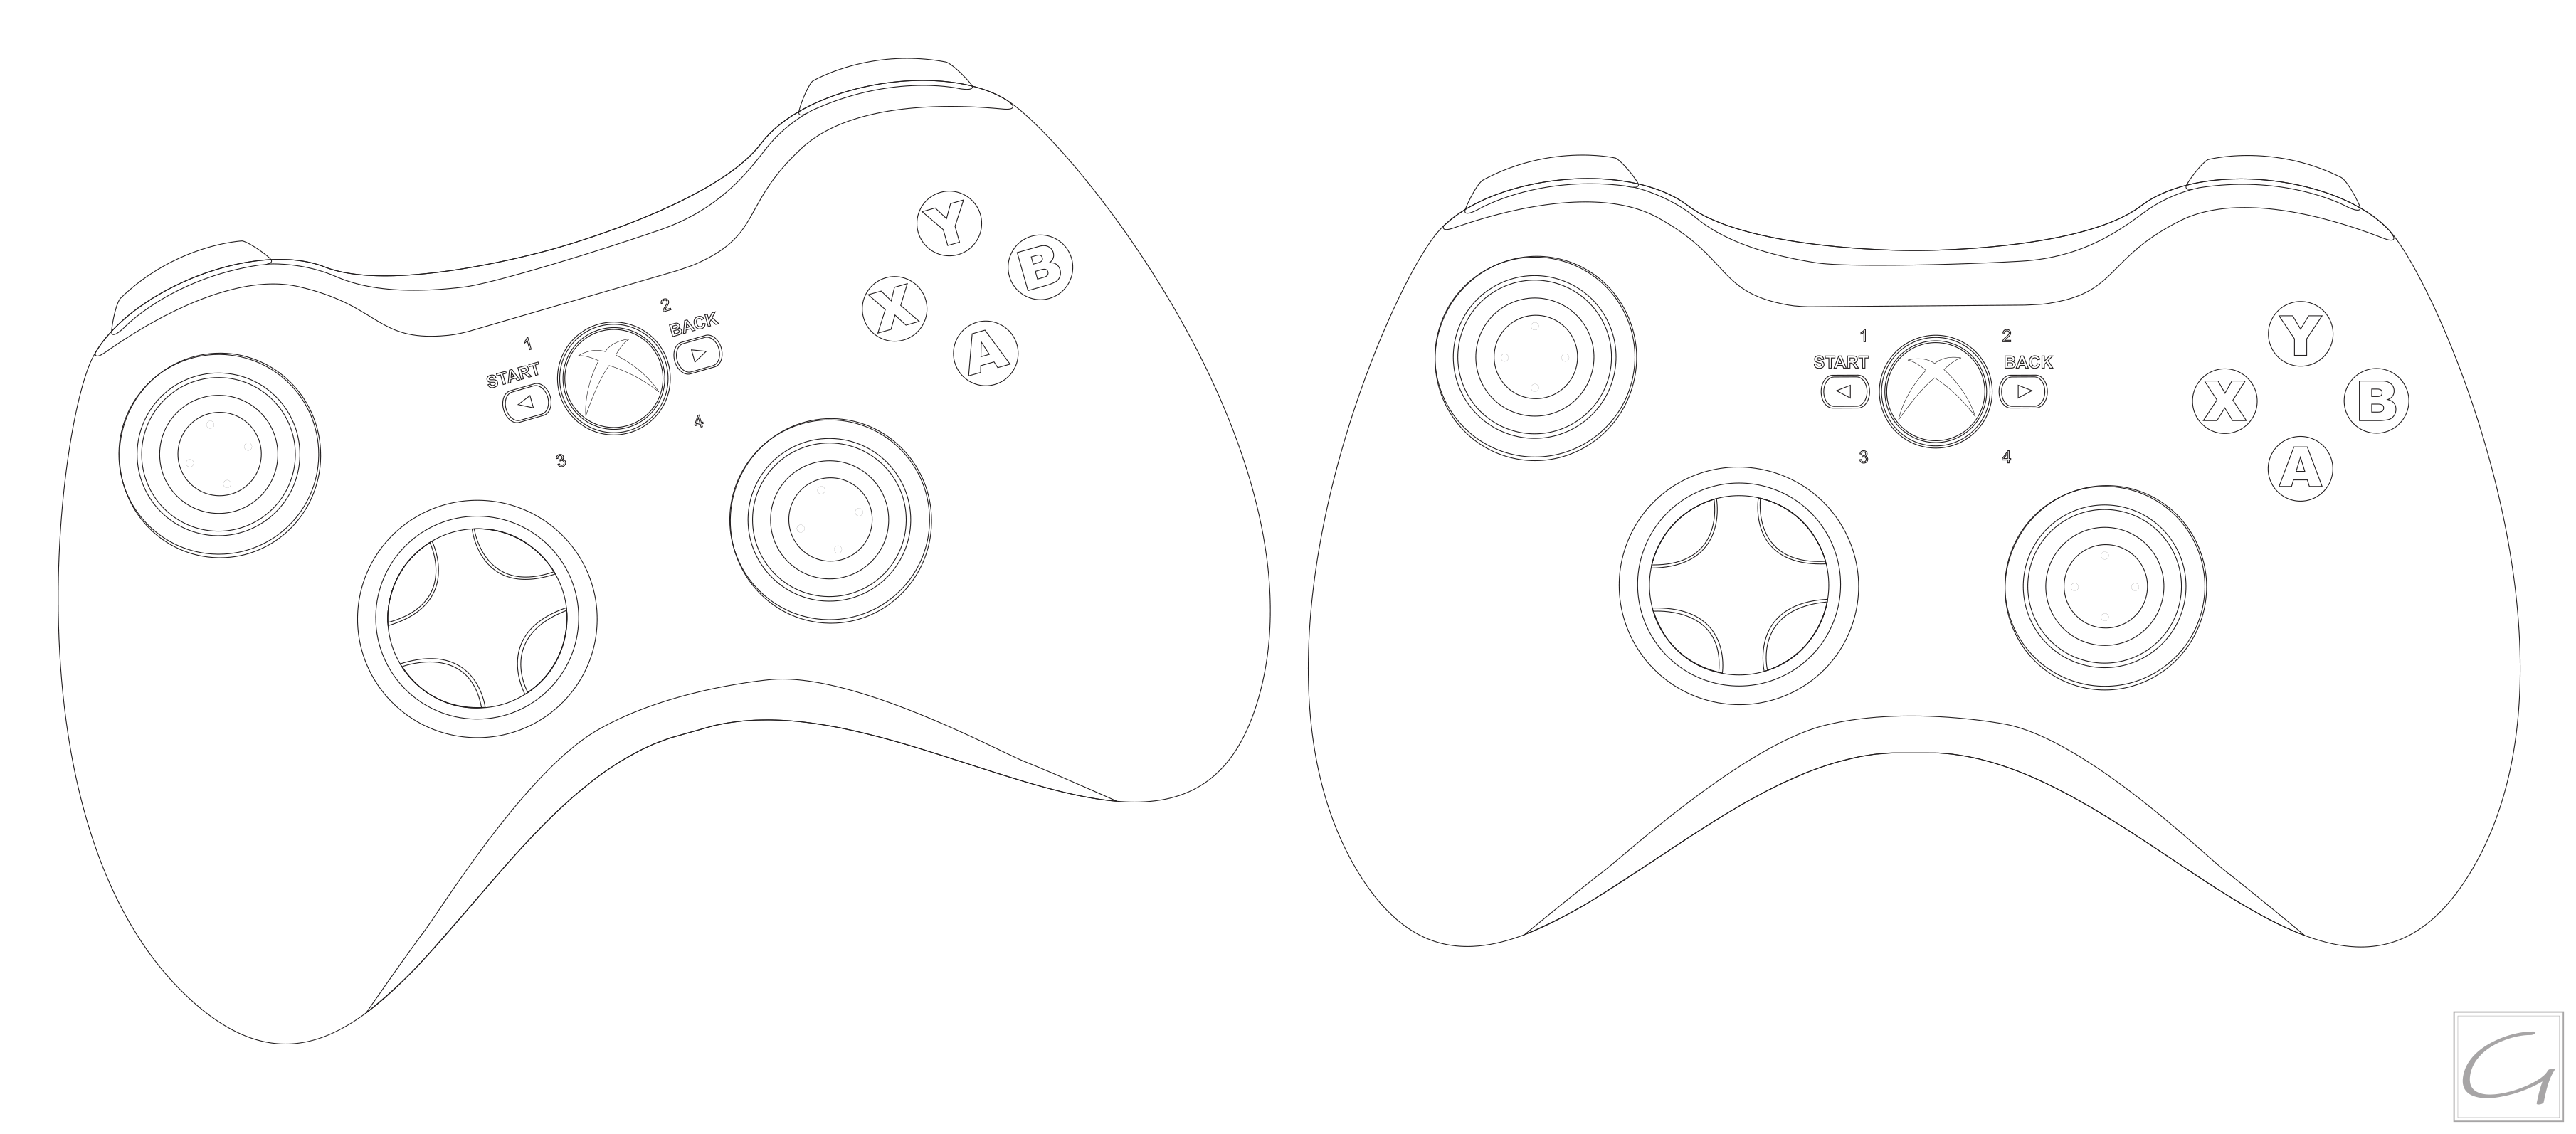 D Line Drawings Xbox One : Xbox controller outline by ghussain on deviantart